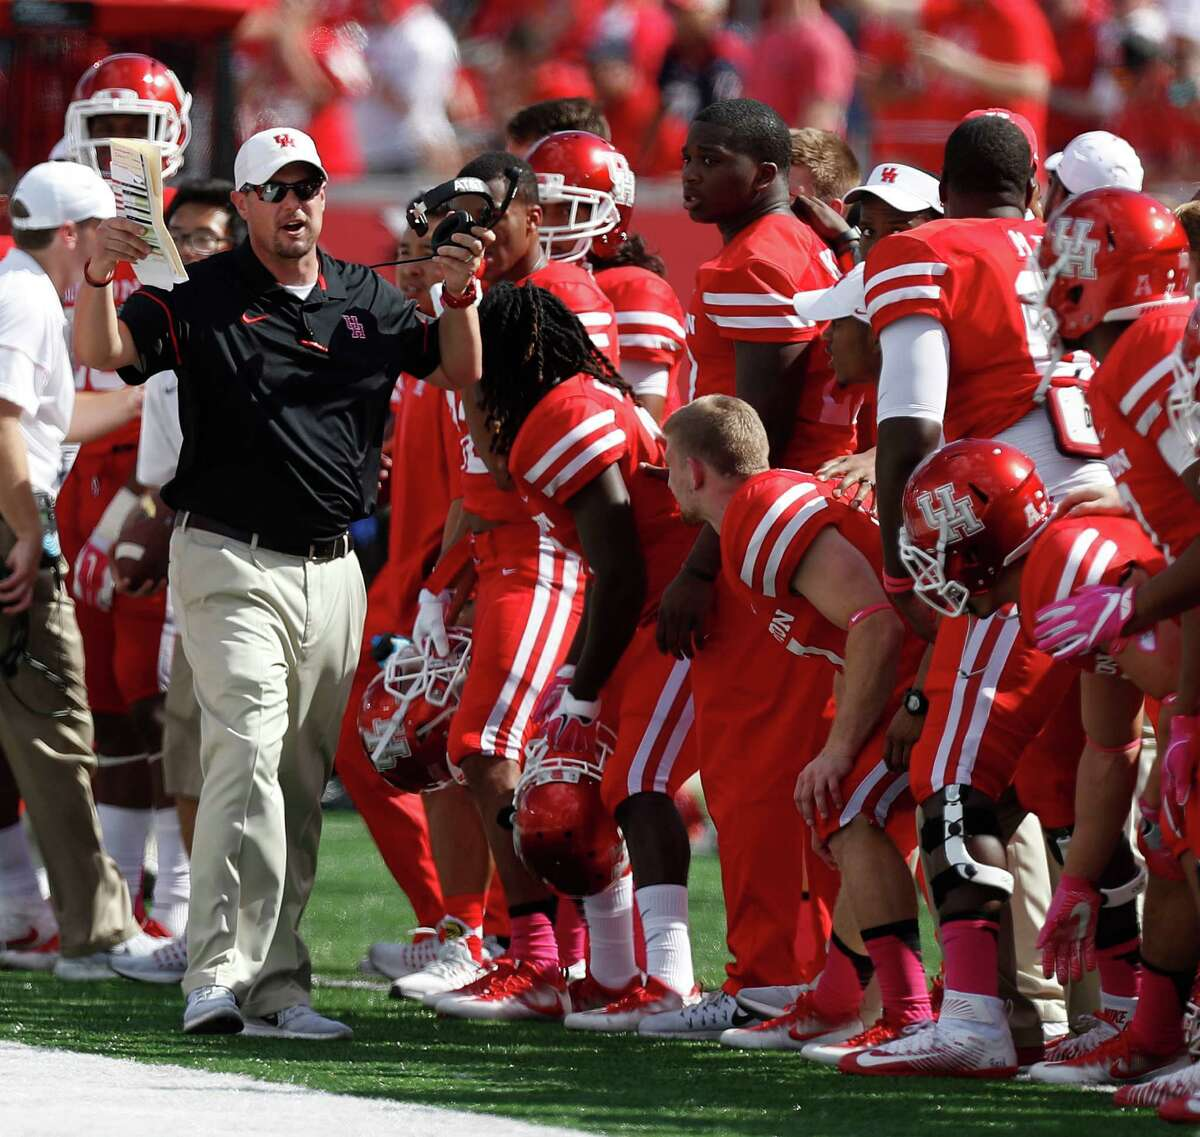 Reports emerged Thursday that UH coach Tom Herman became LSU's top target for its open position but that Herman also had not ruled out an offer from Texas. UH, meanwhile, has reportedly offered its coach an extension that includes a raise.